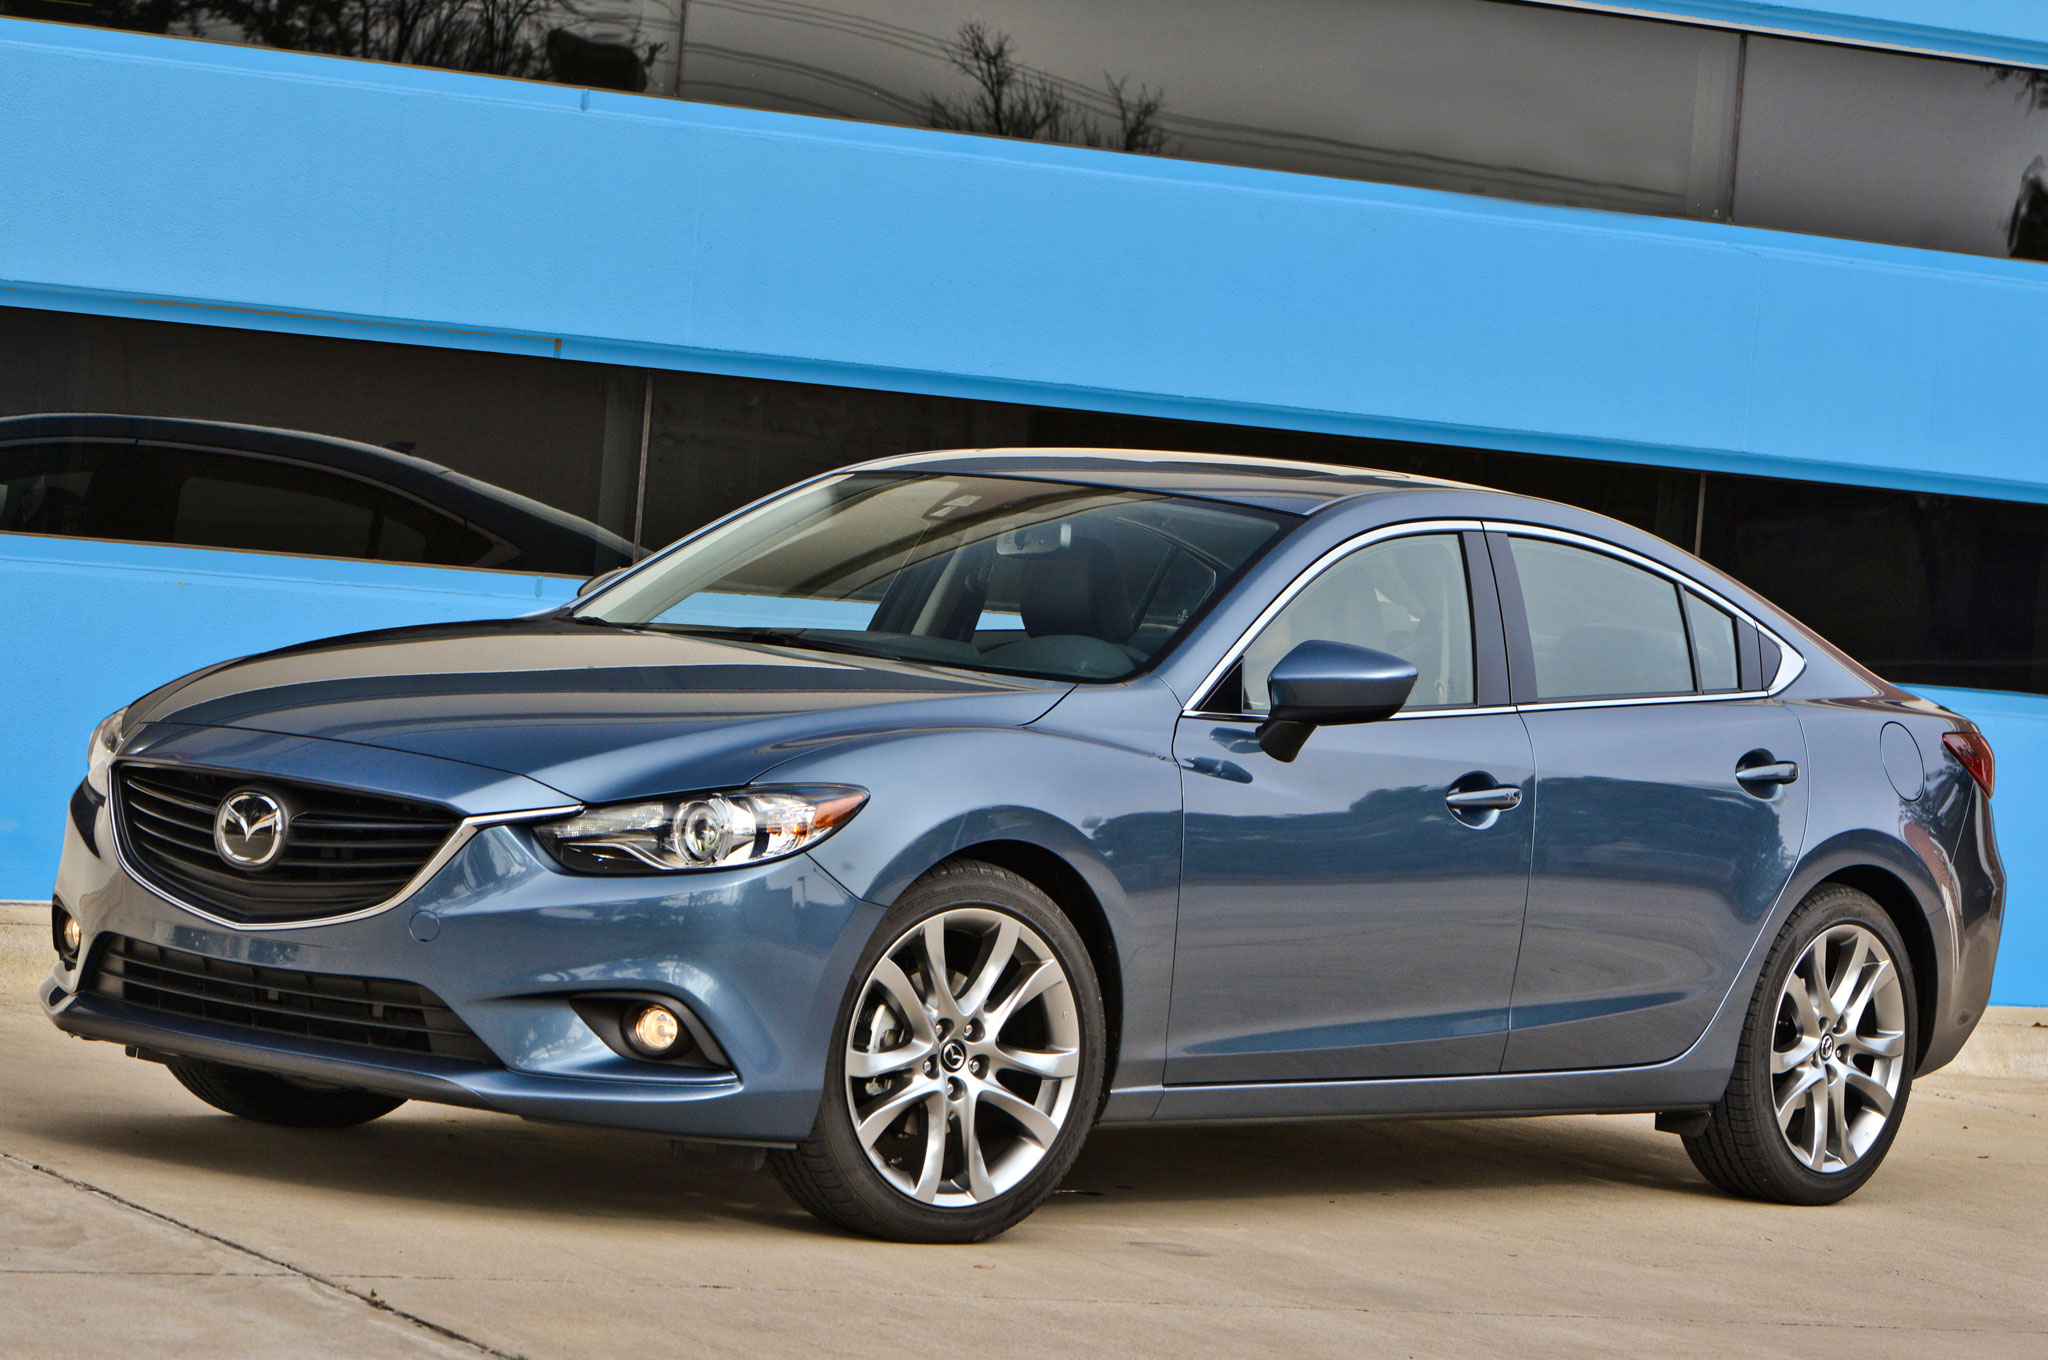 Amazing 2014 Mazda6 With I ELOOP To Get 28/40 MPG, Cost $32,570